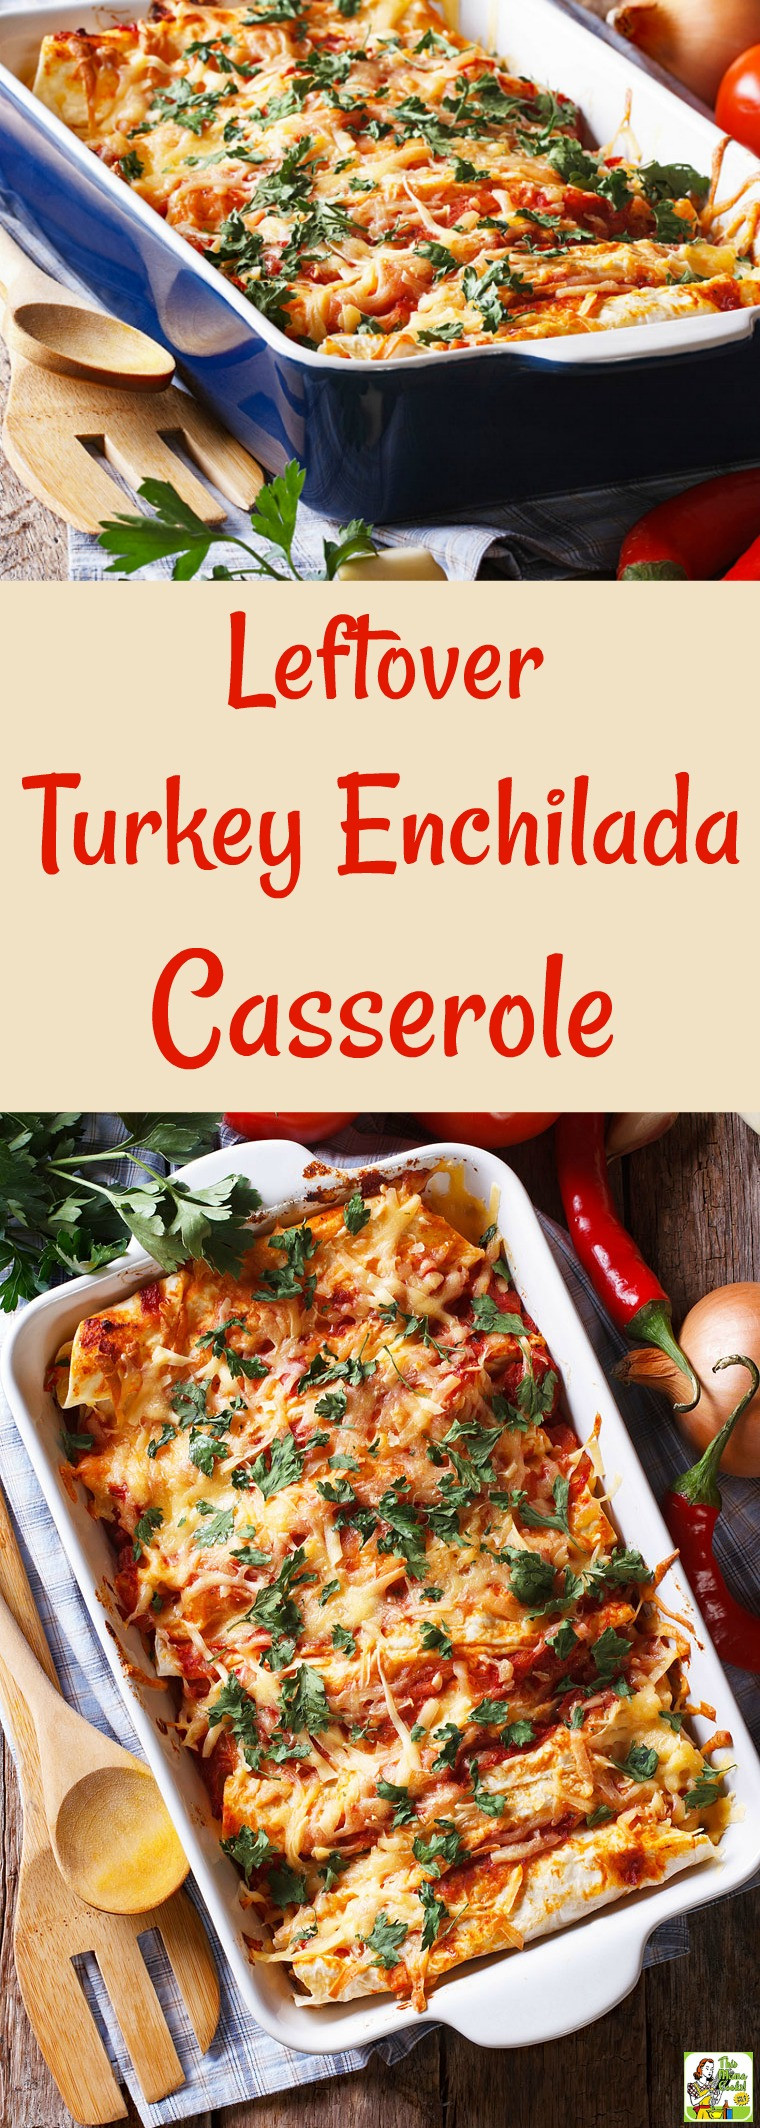 Leftover Pulled Pork Casserole  Too much turkey Make Leftover Turkey Enchilada Casserole